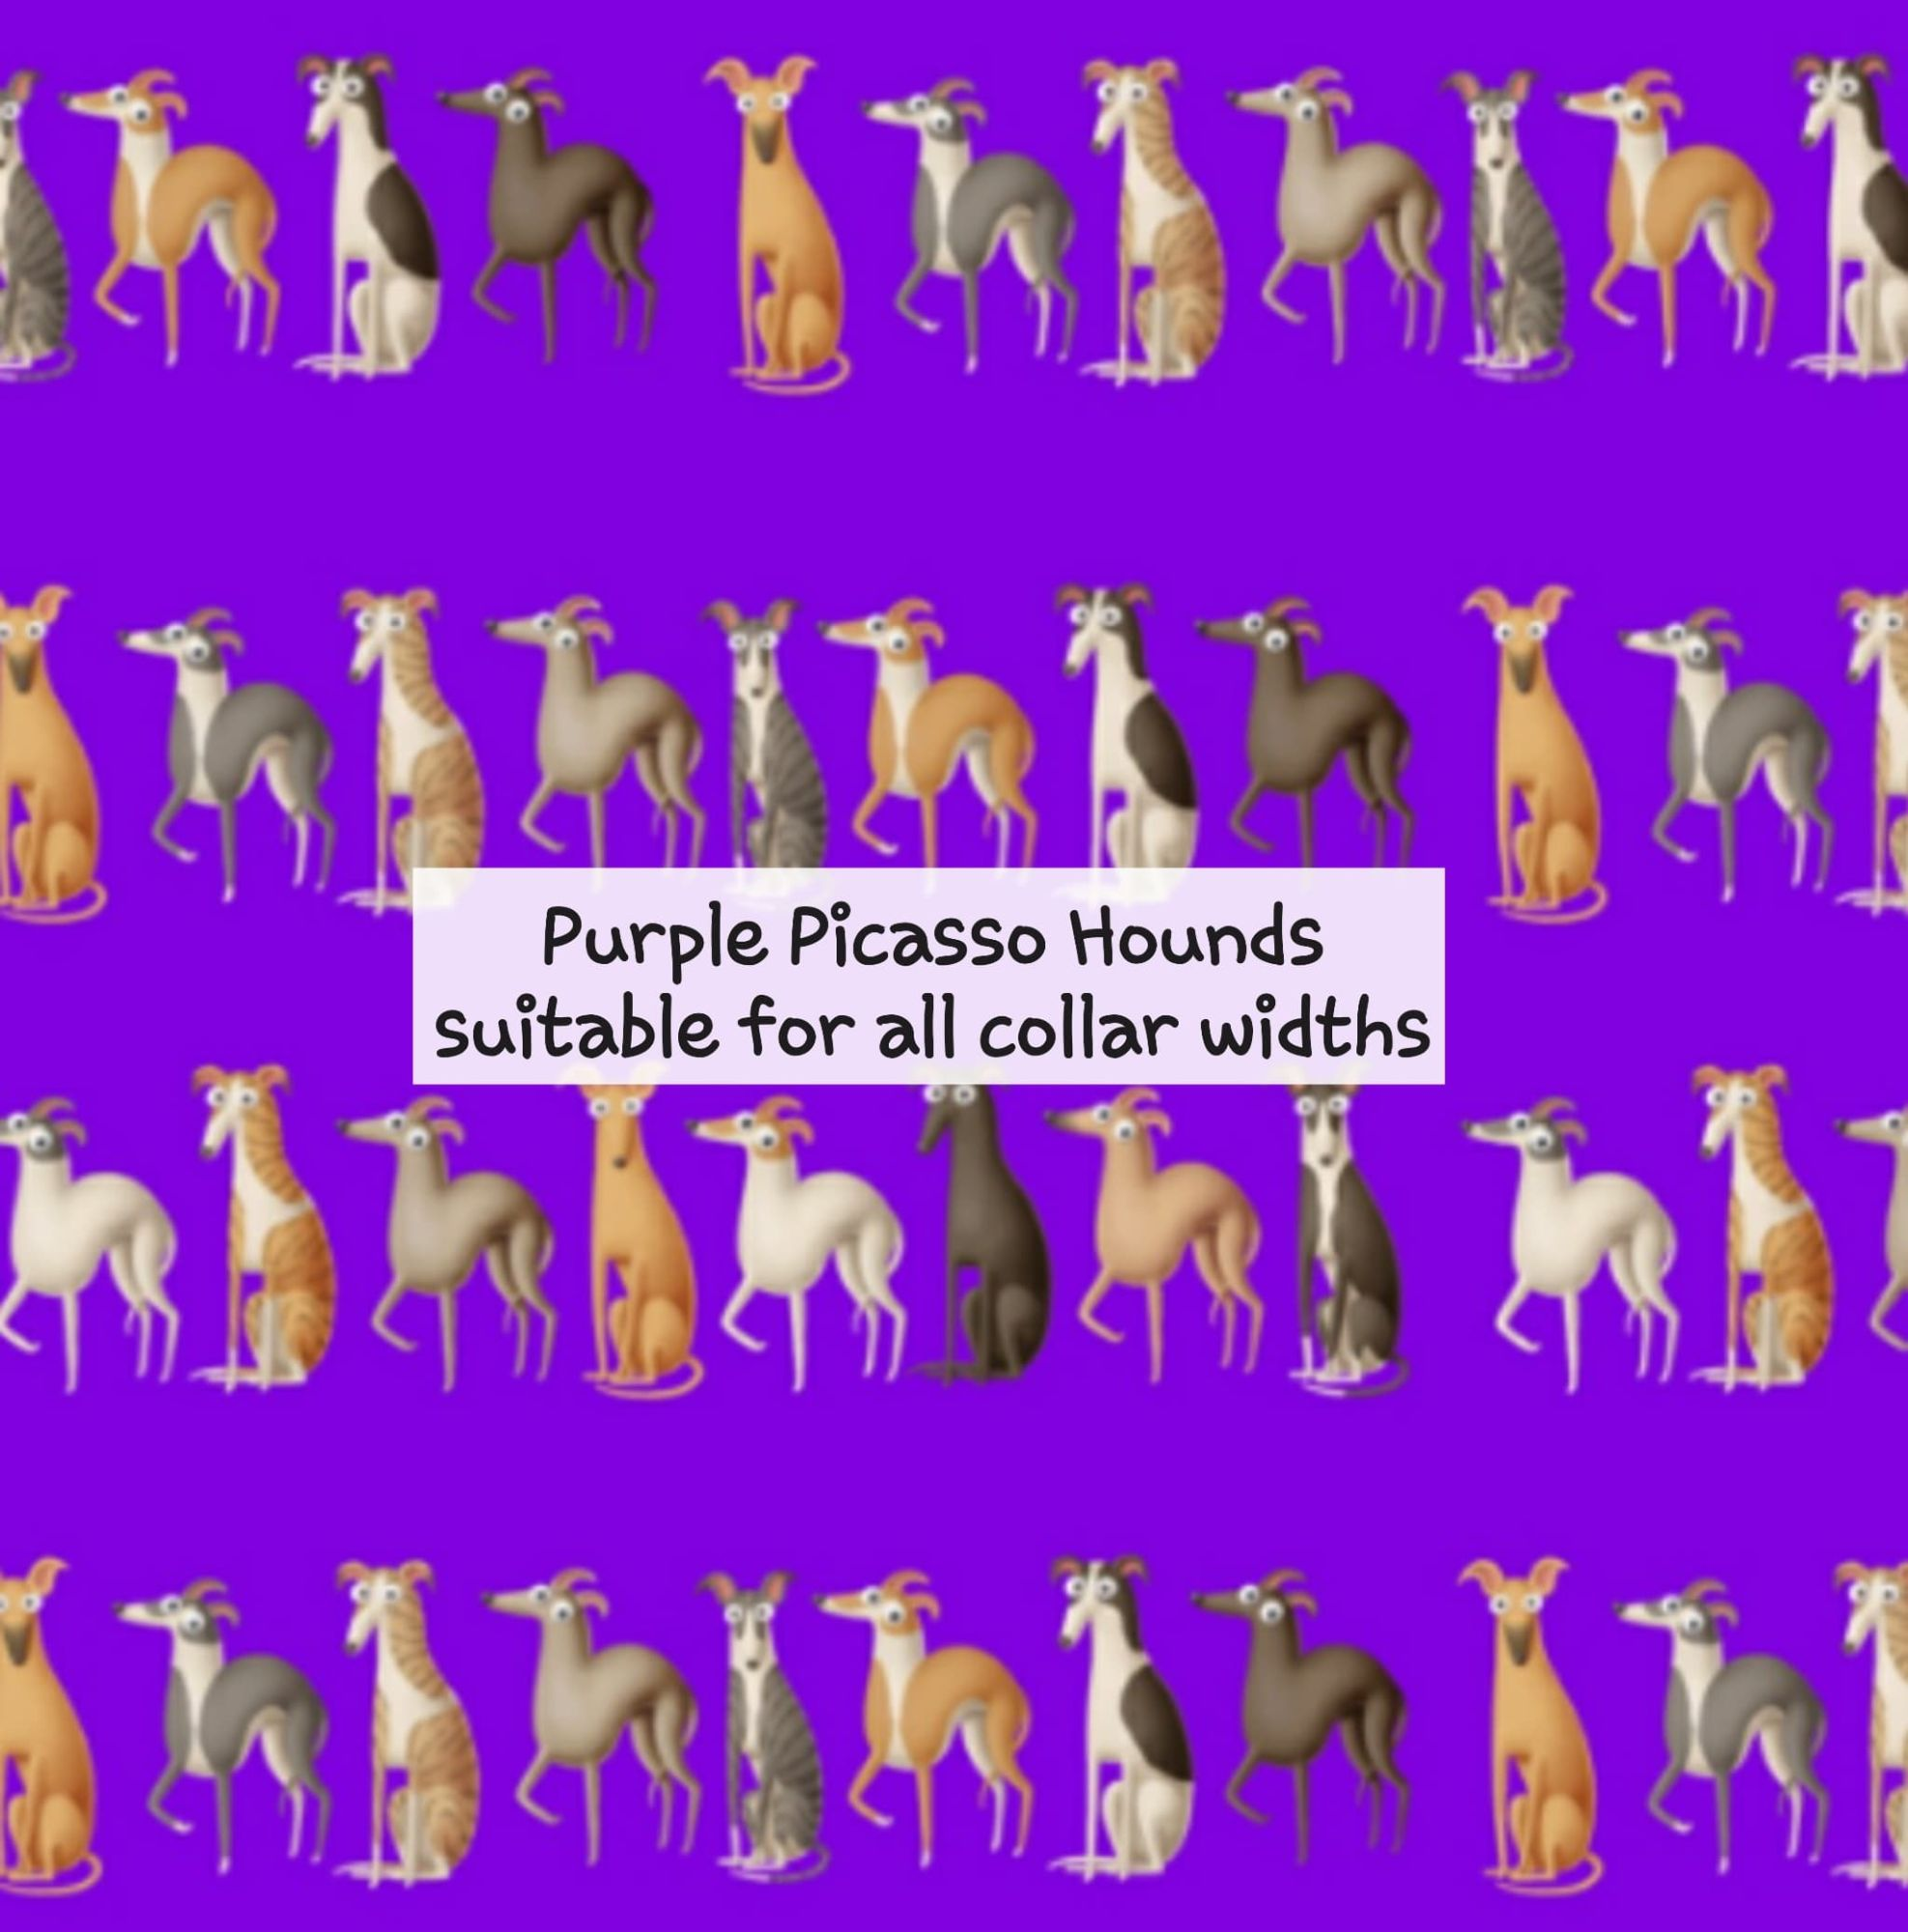 Purple Picasso Hounds - Suitable for all collar widths